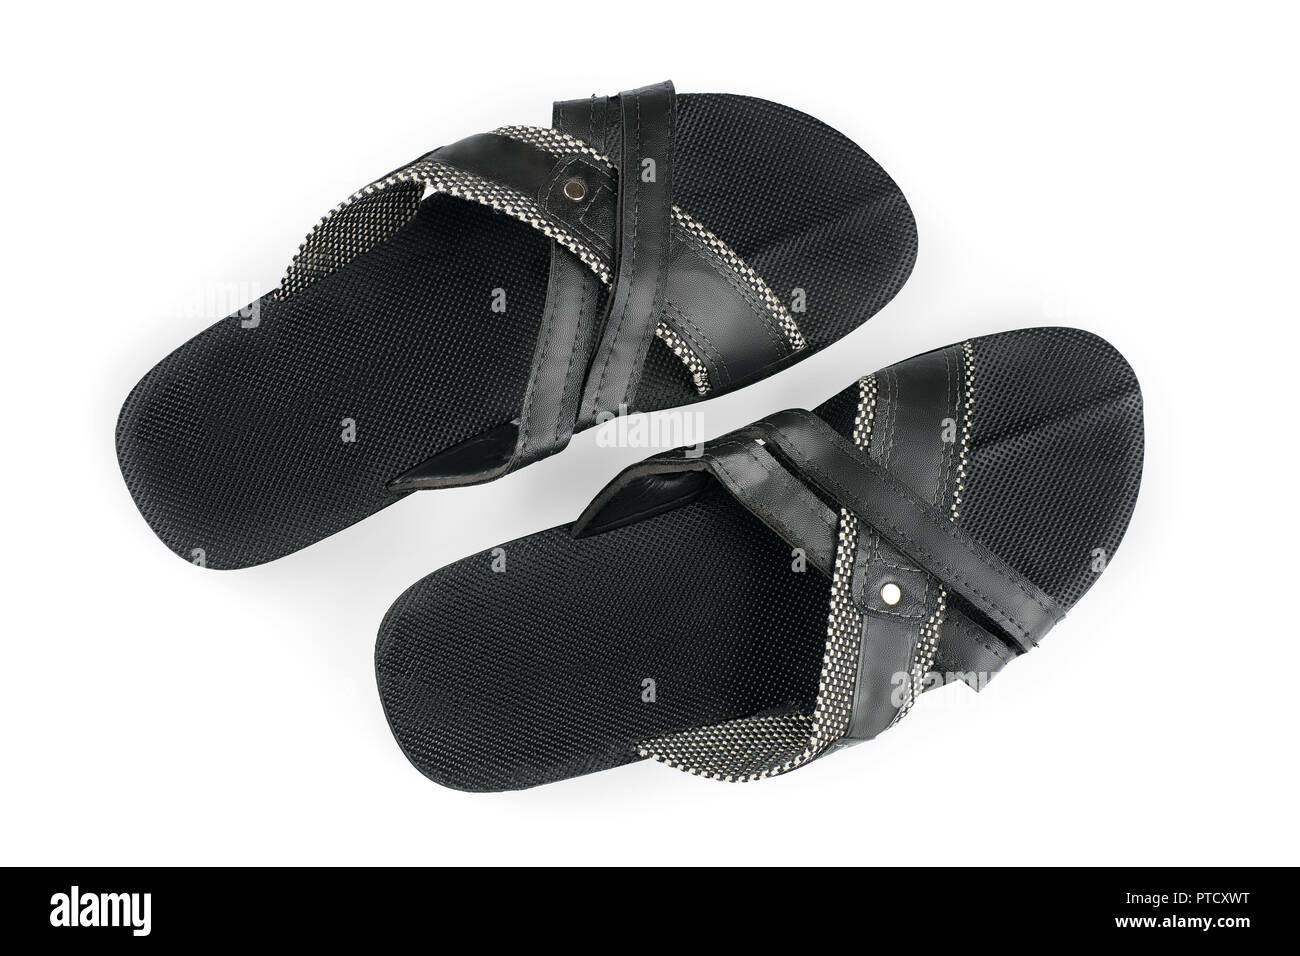 81ecba95b01 Rubber Sandal Stock Photos   Rubber Sandal Stock Images - Alamy